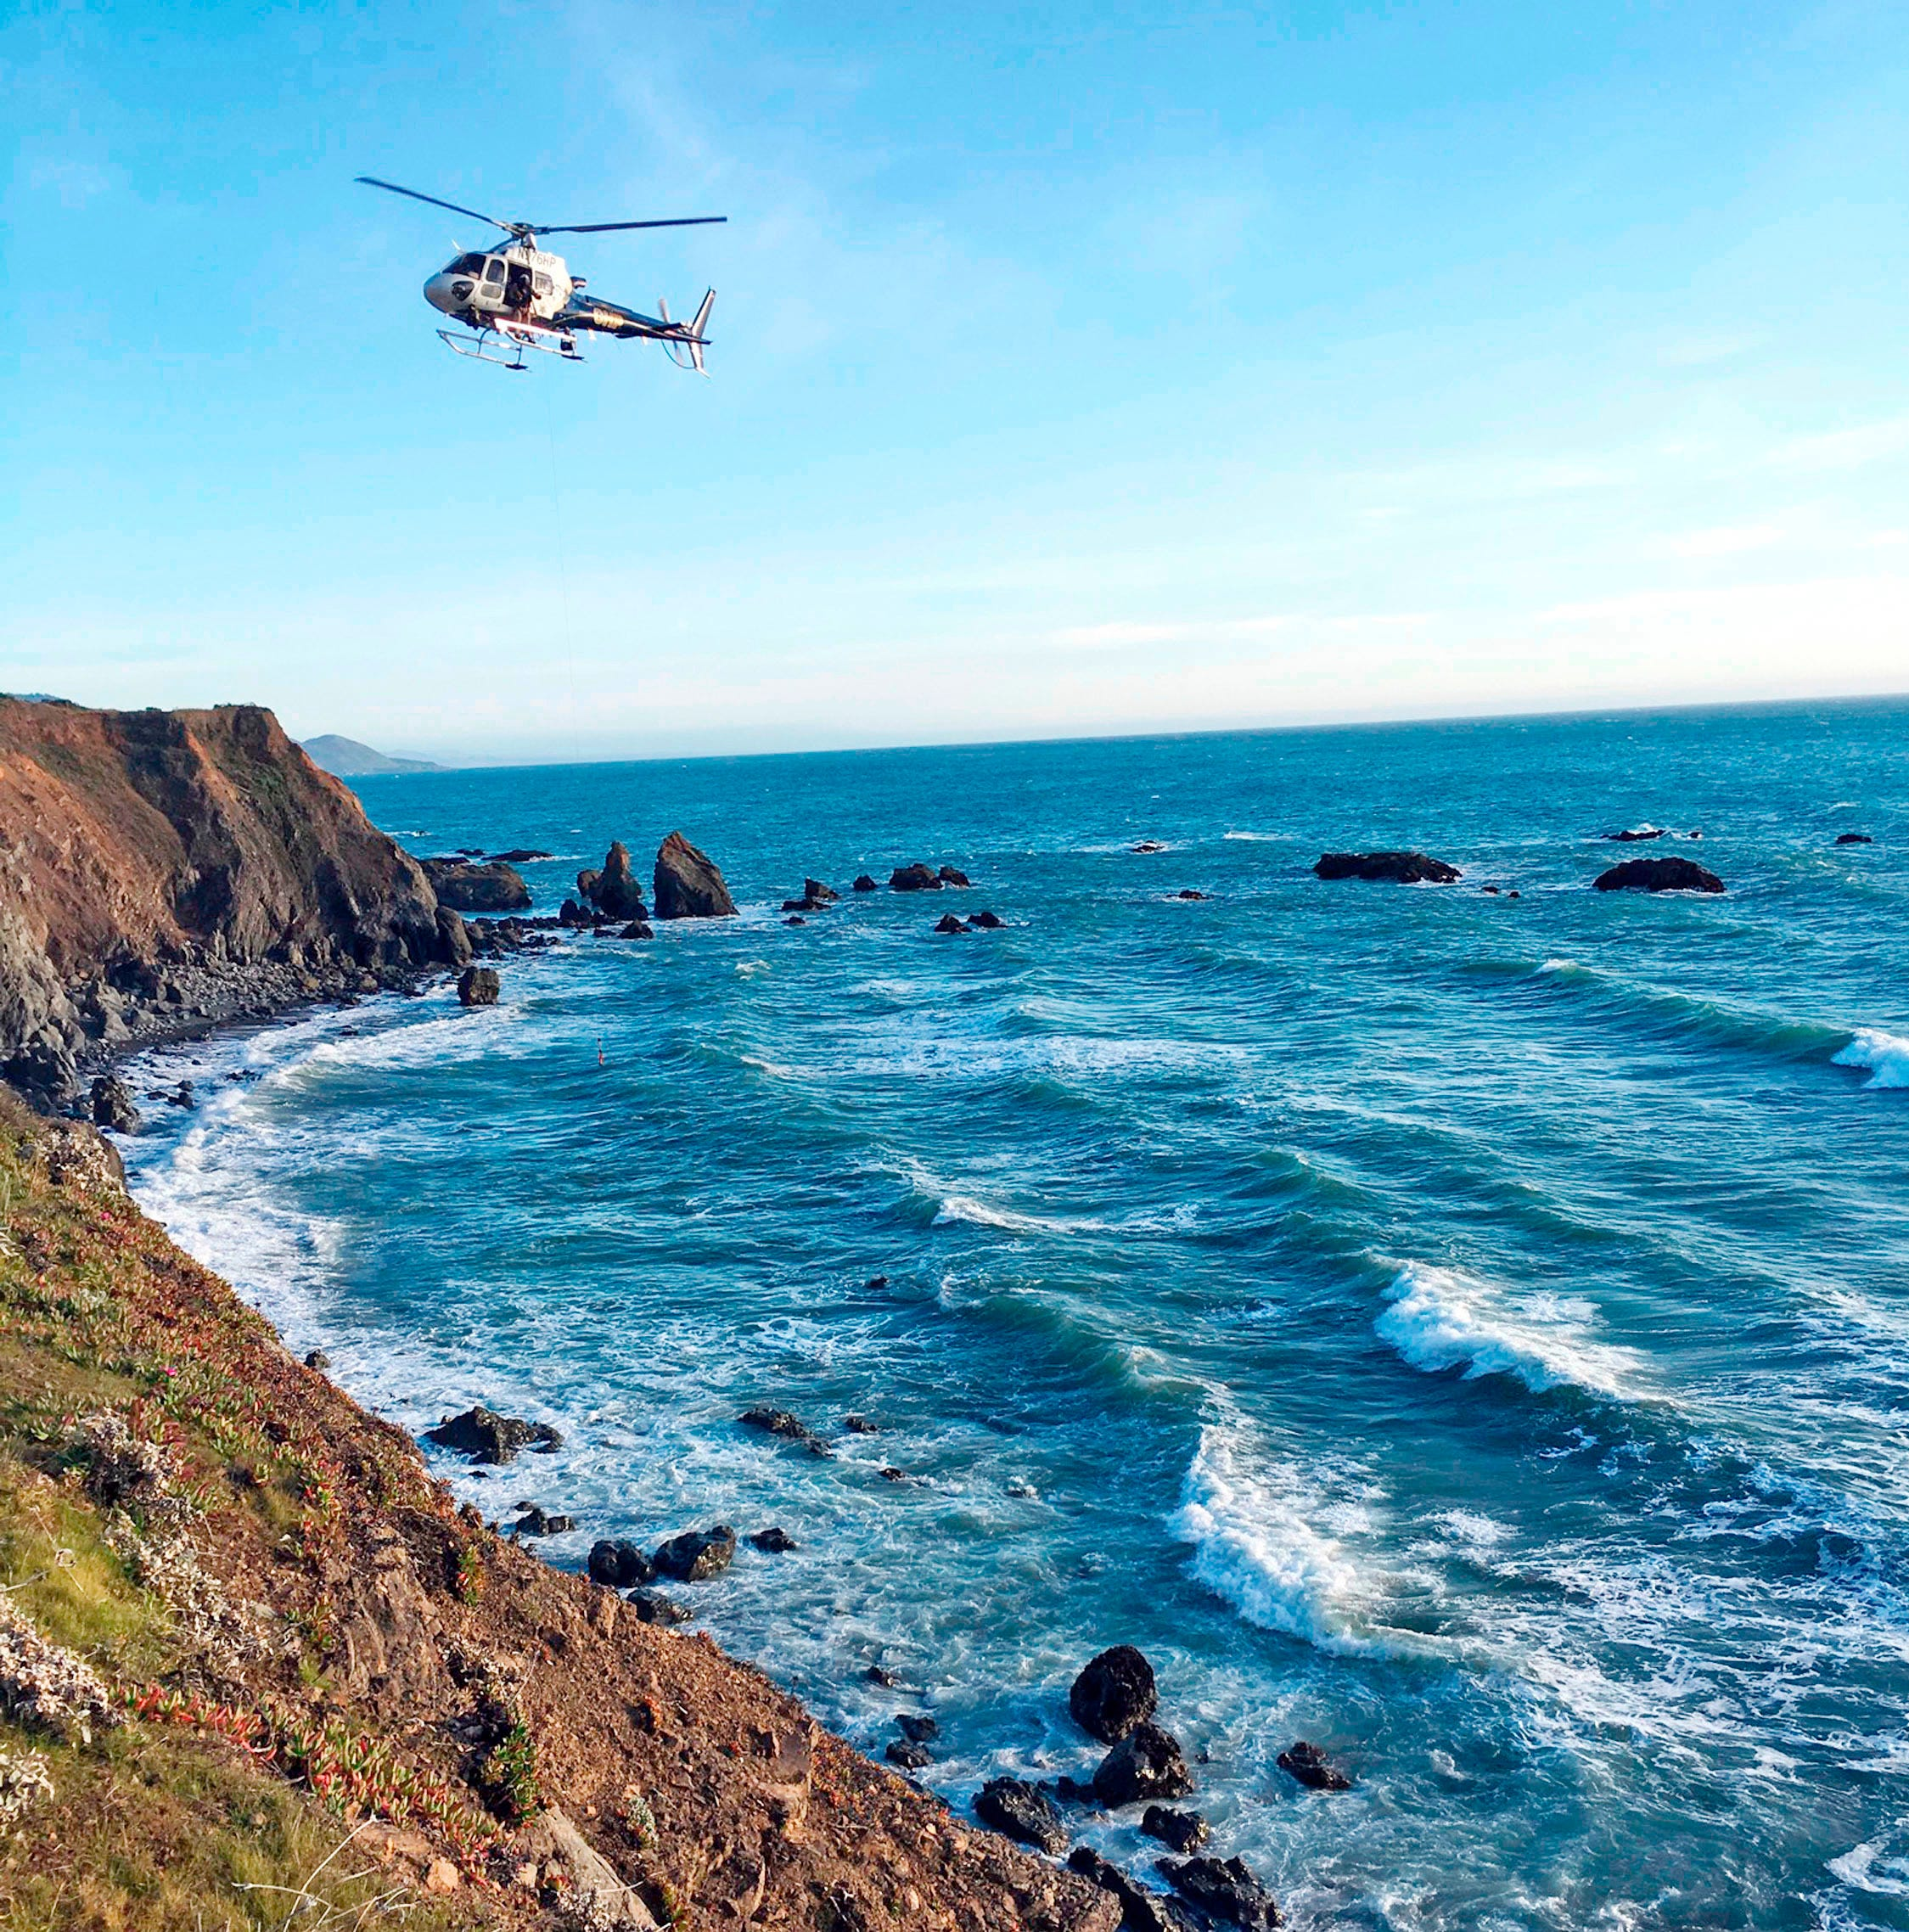 Details emerge on Hart family whose SUV plunged off Calif. cliff